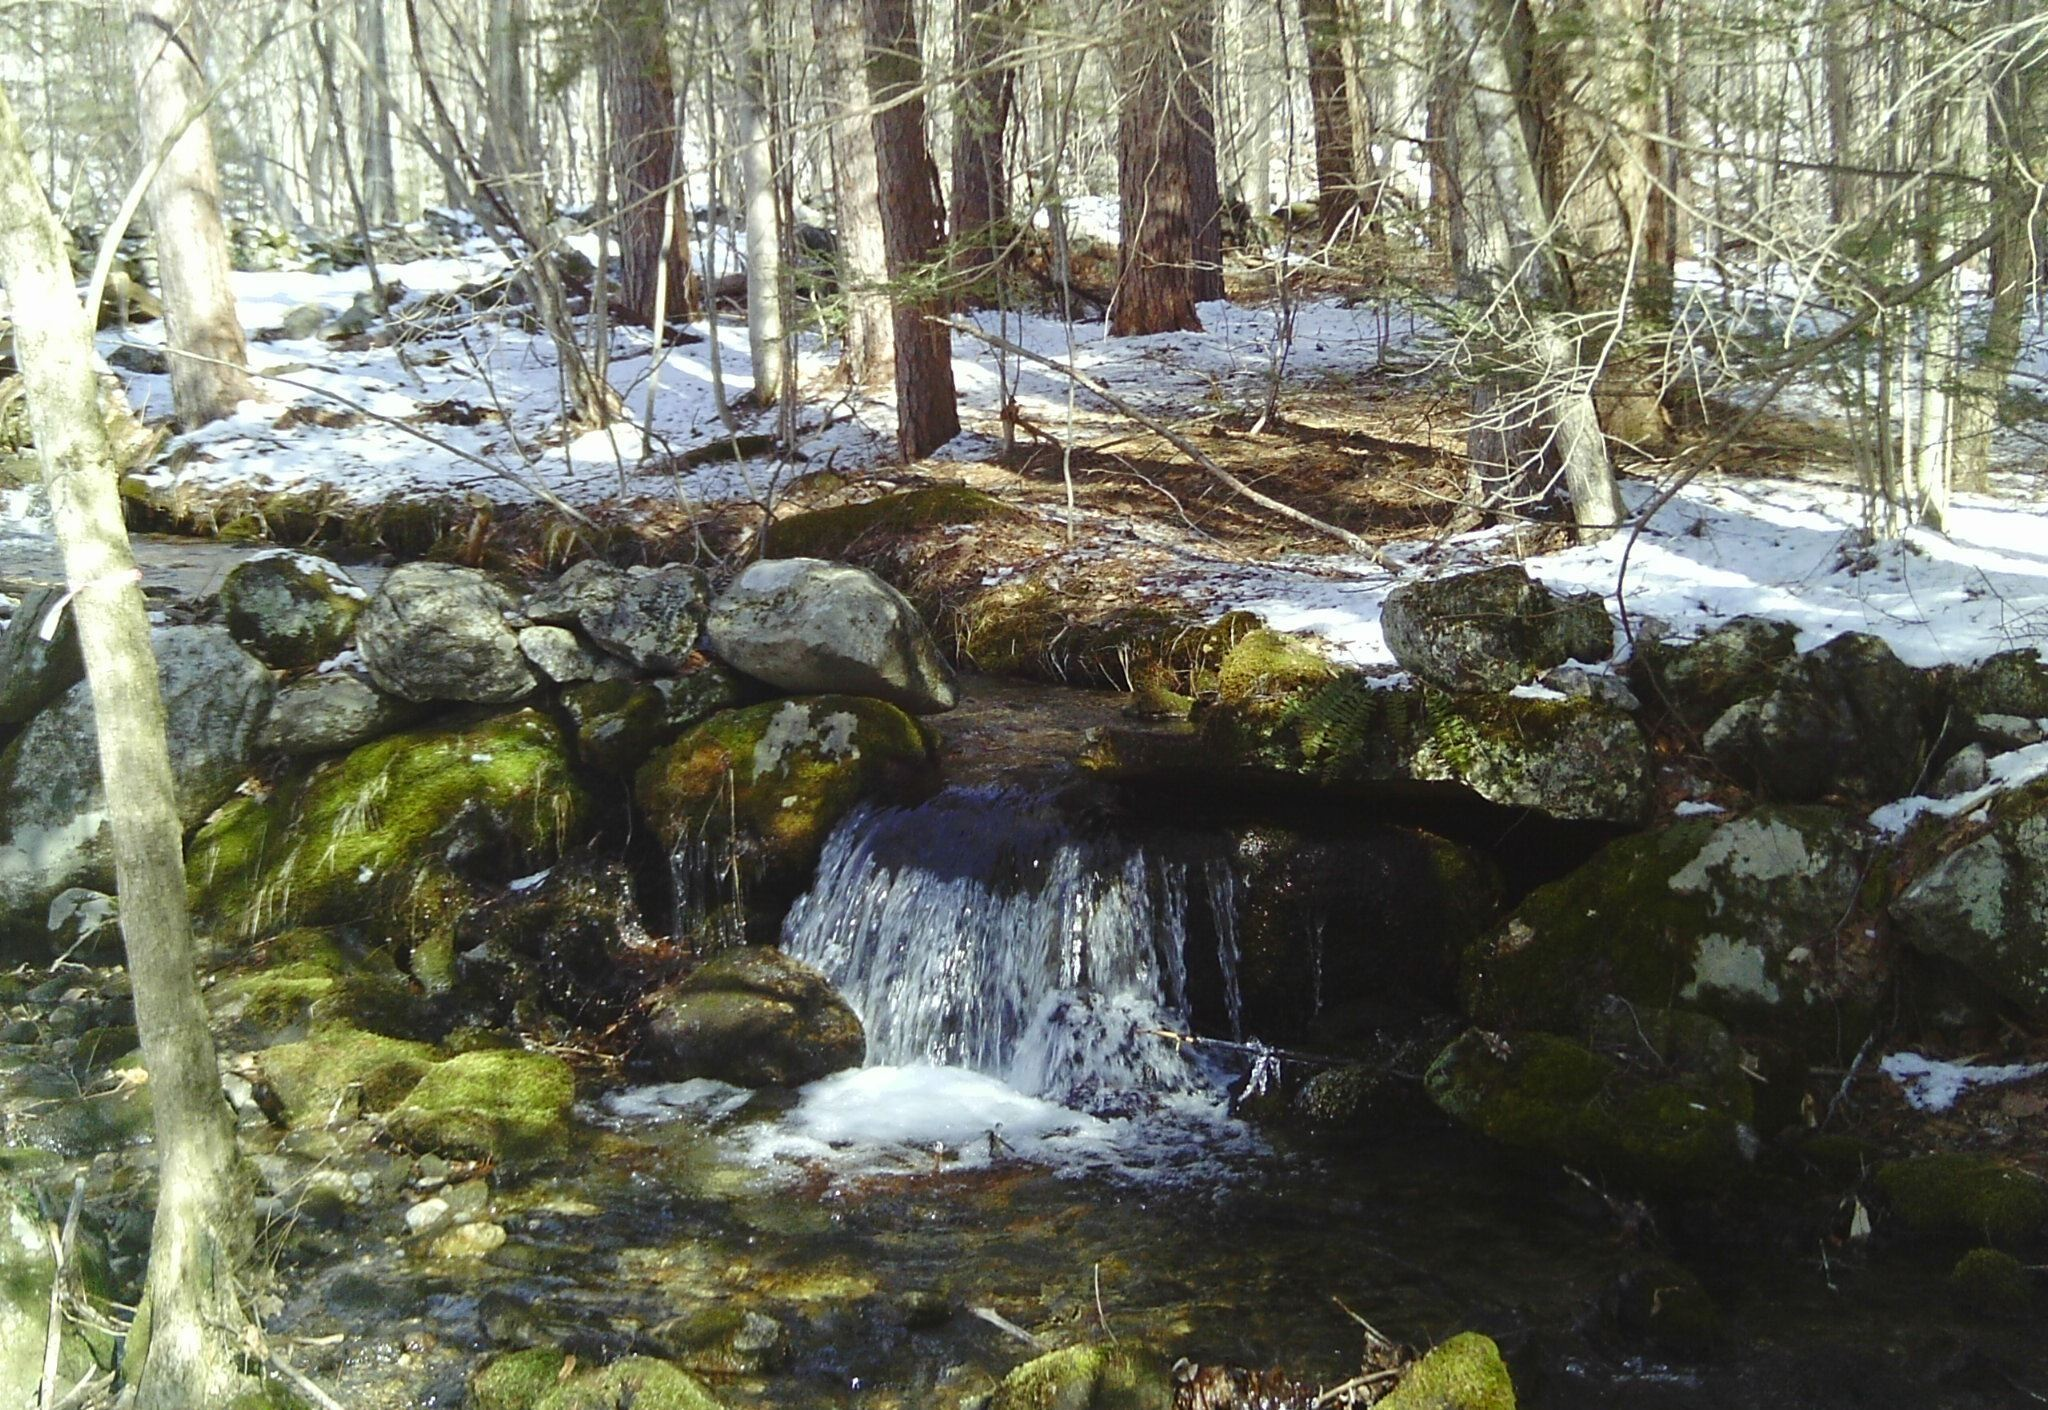 Image of Finney Brook in Conway